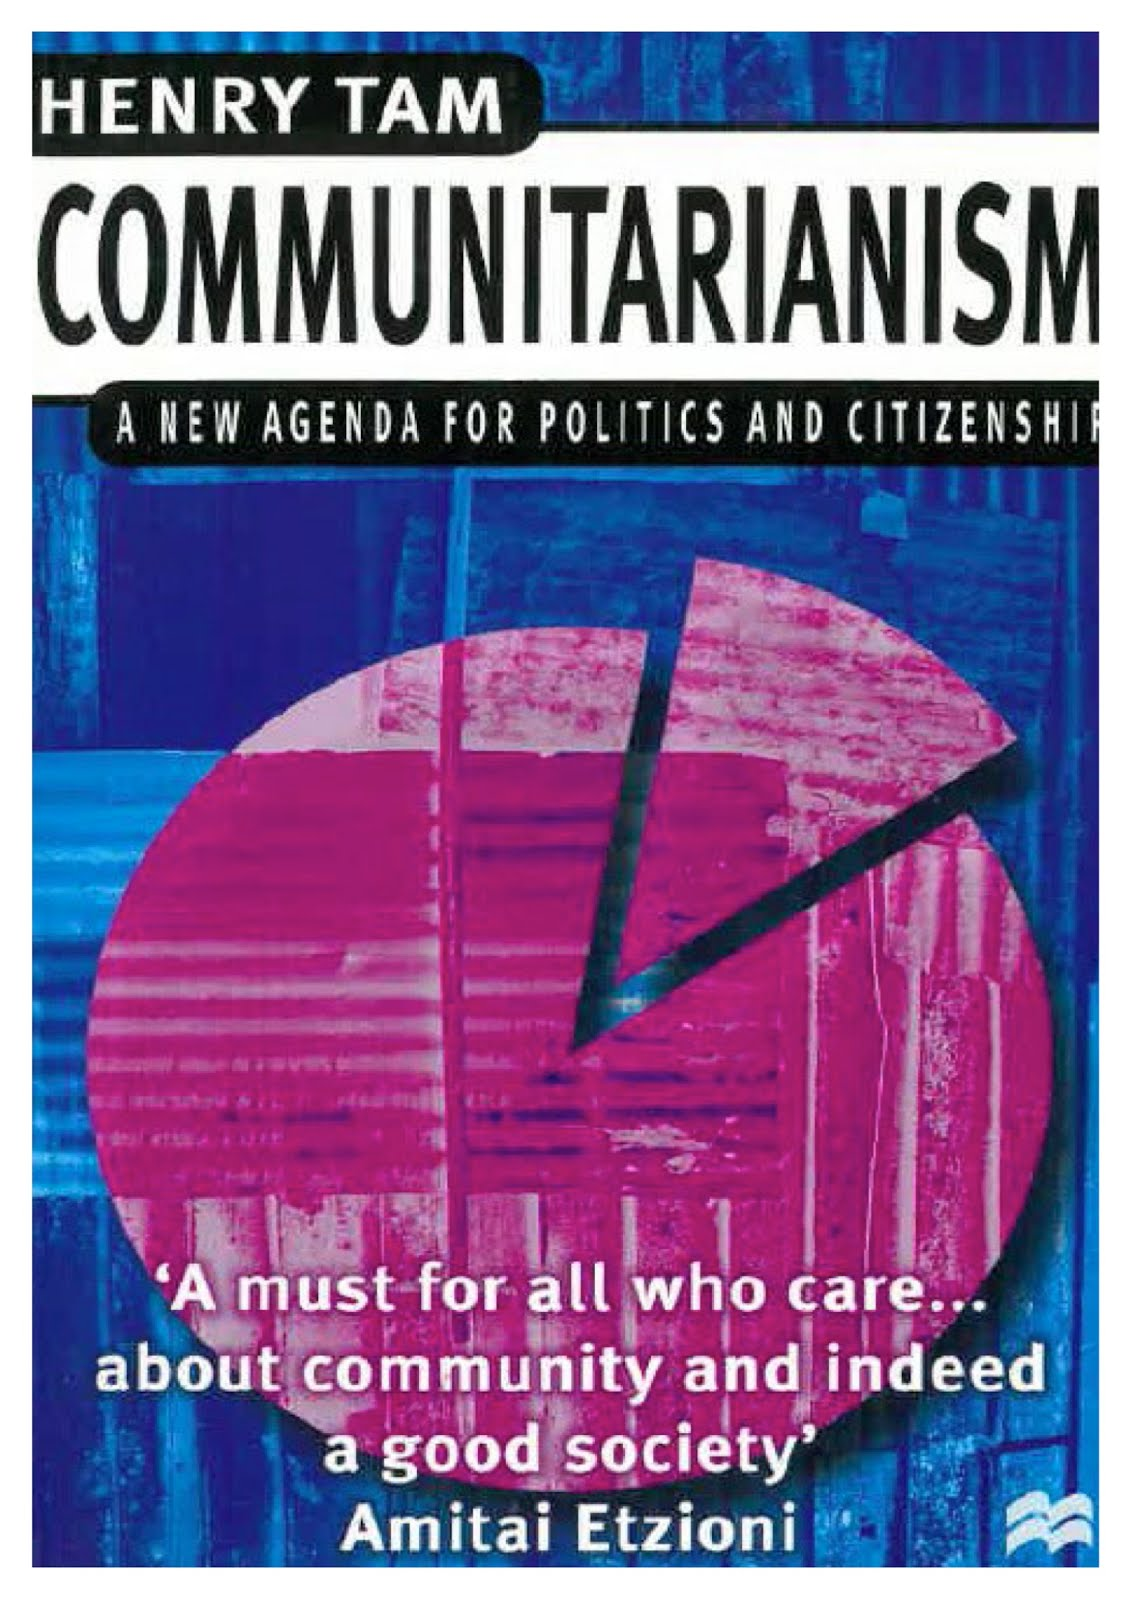 Communitarianism Explained